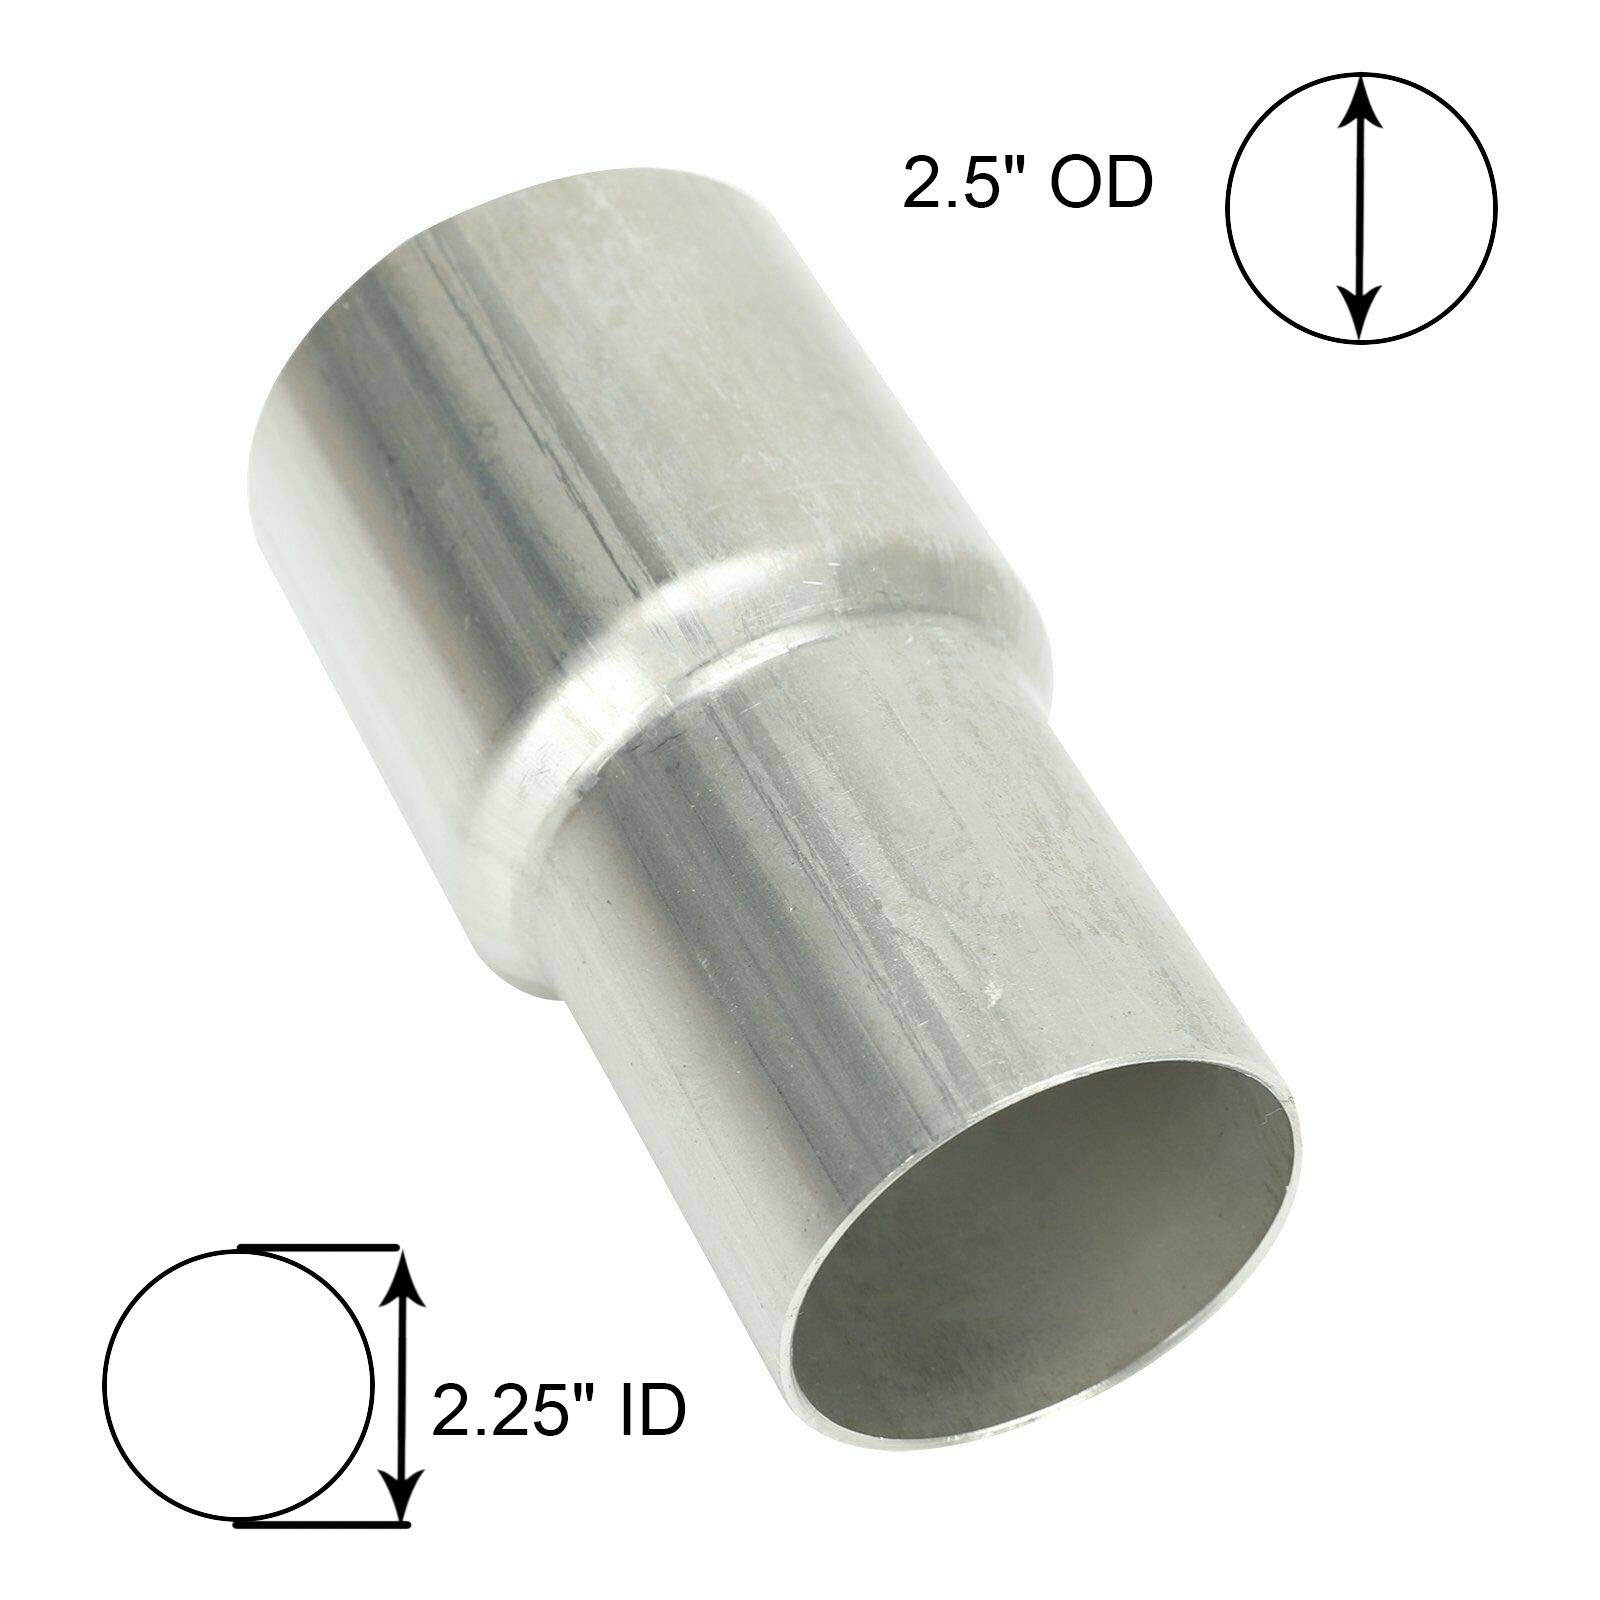 """BETTERCLOUD 2.25"""" ID to 2.5"""" OD Exhaust Pipe to Component Adapter Reducer"""